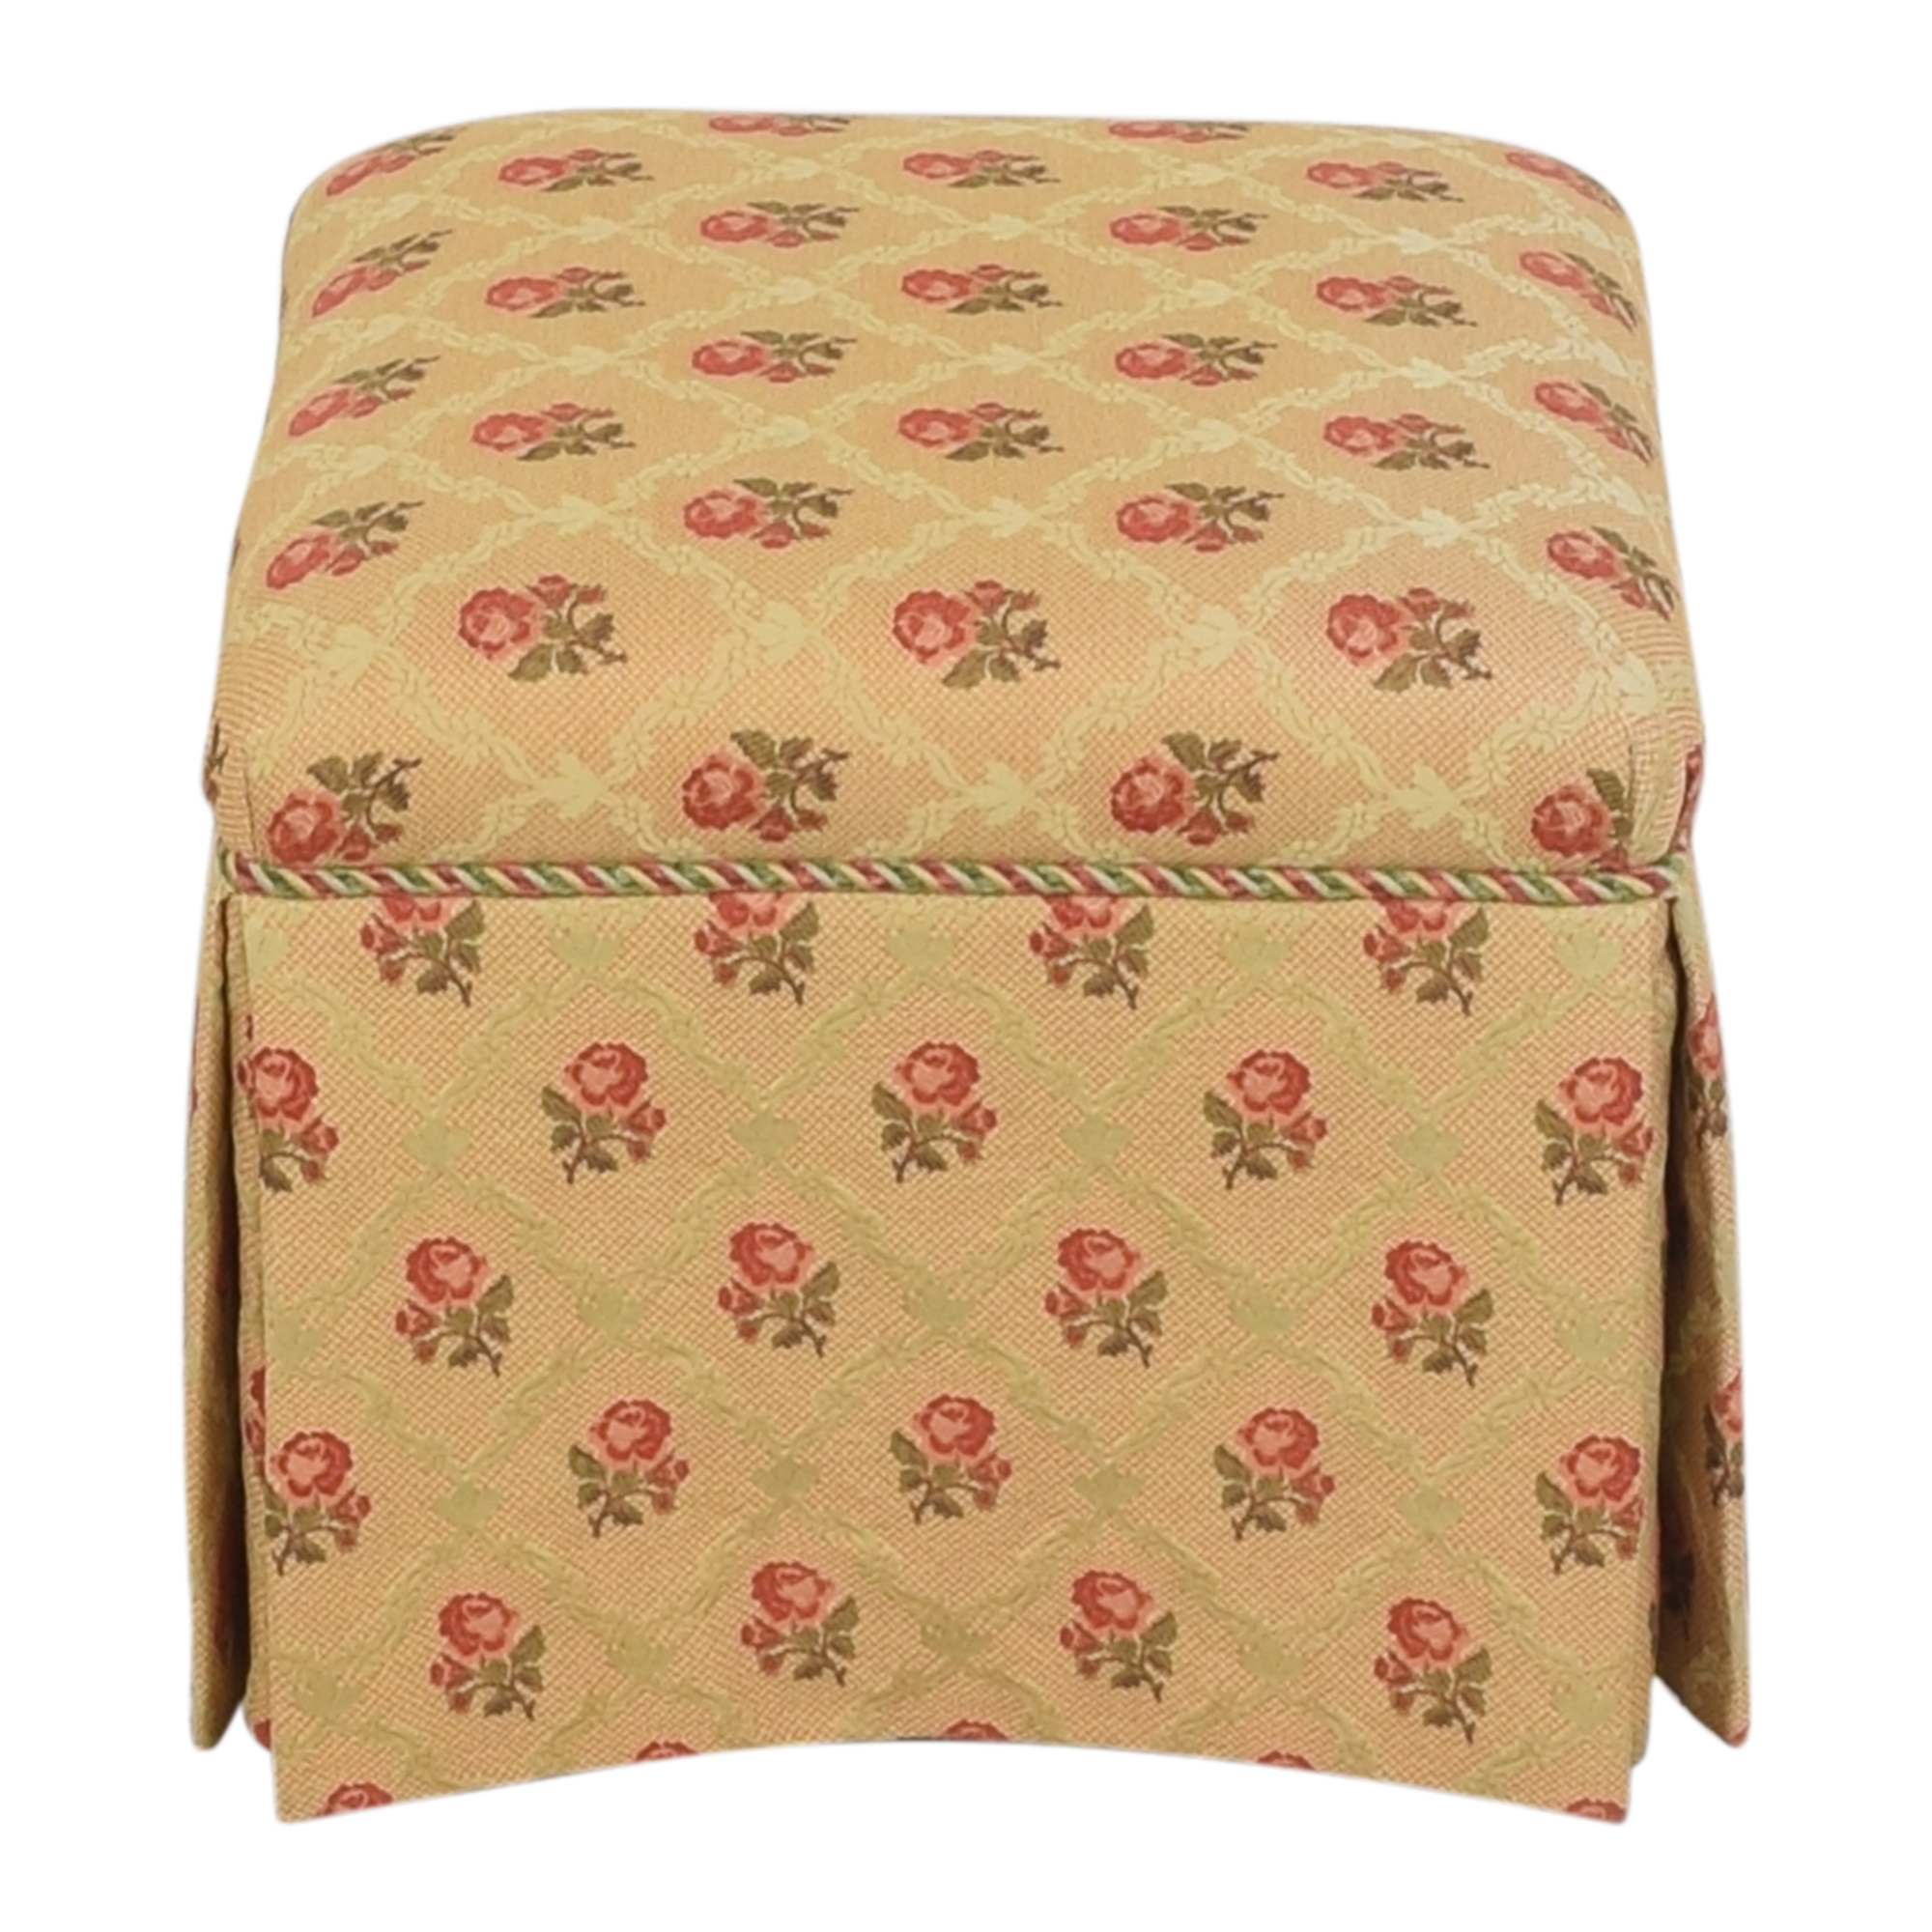 Skirted Square Ottoman / Chairs